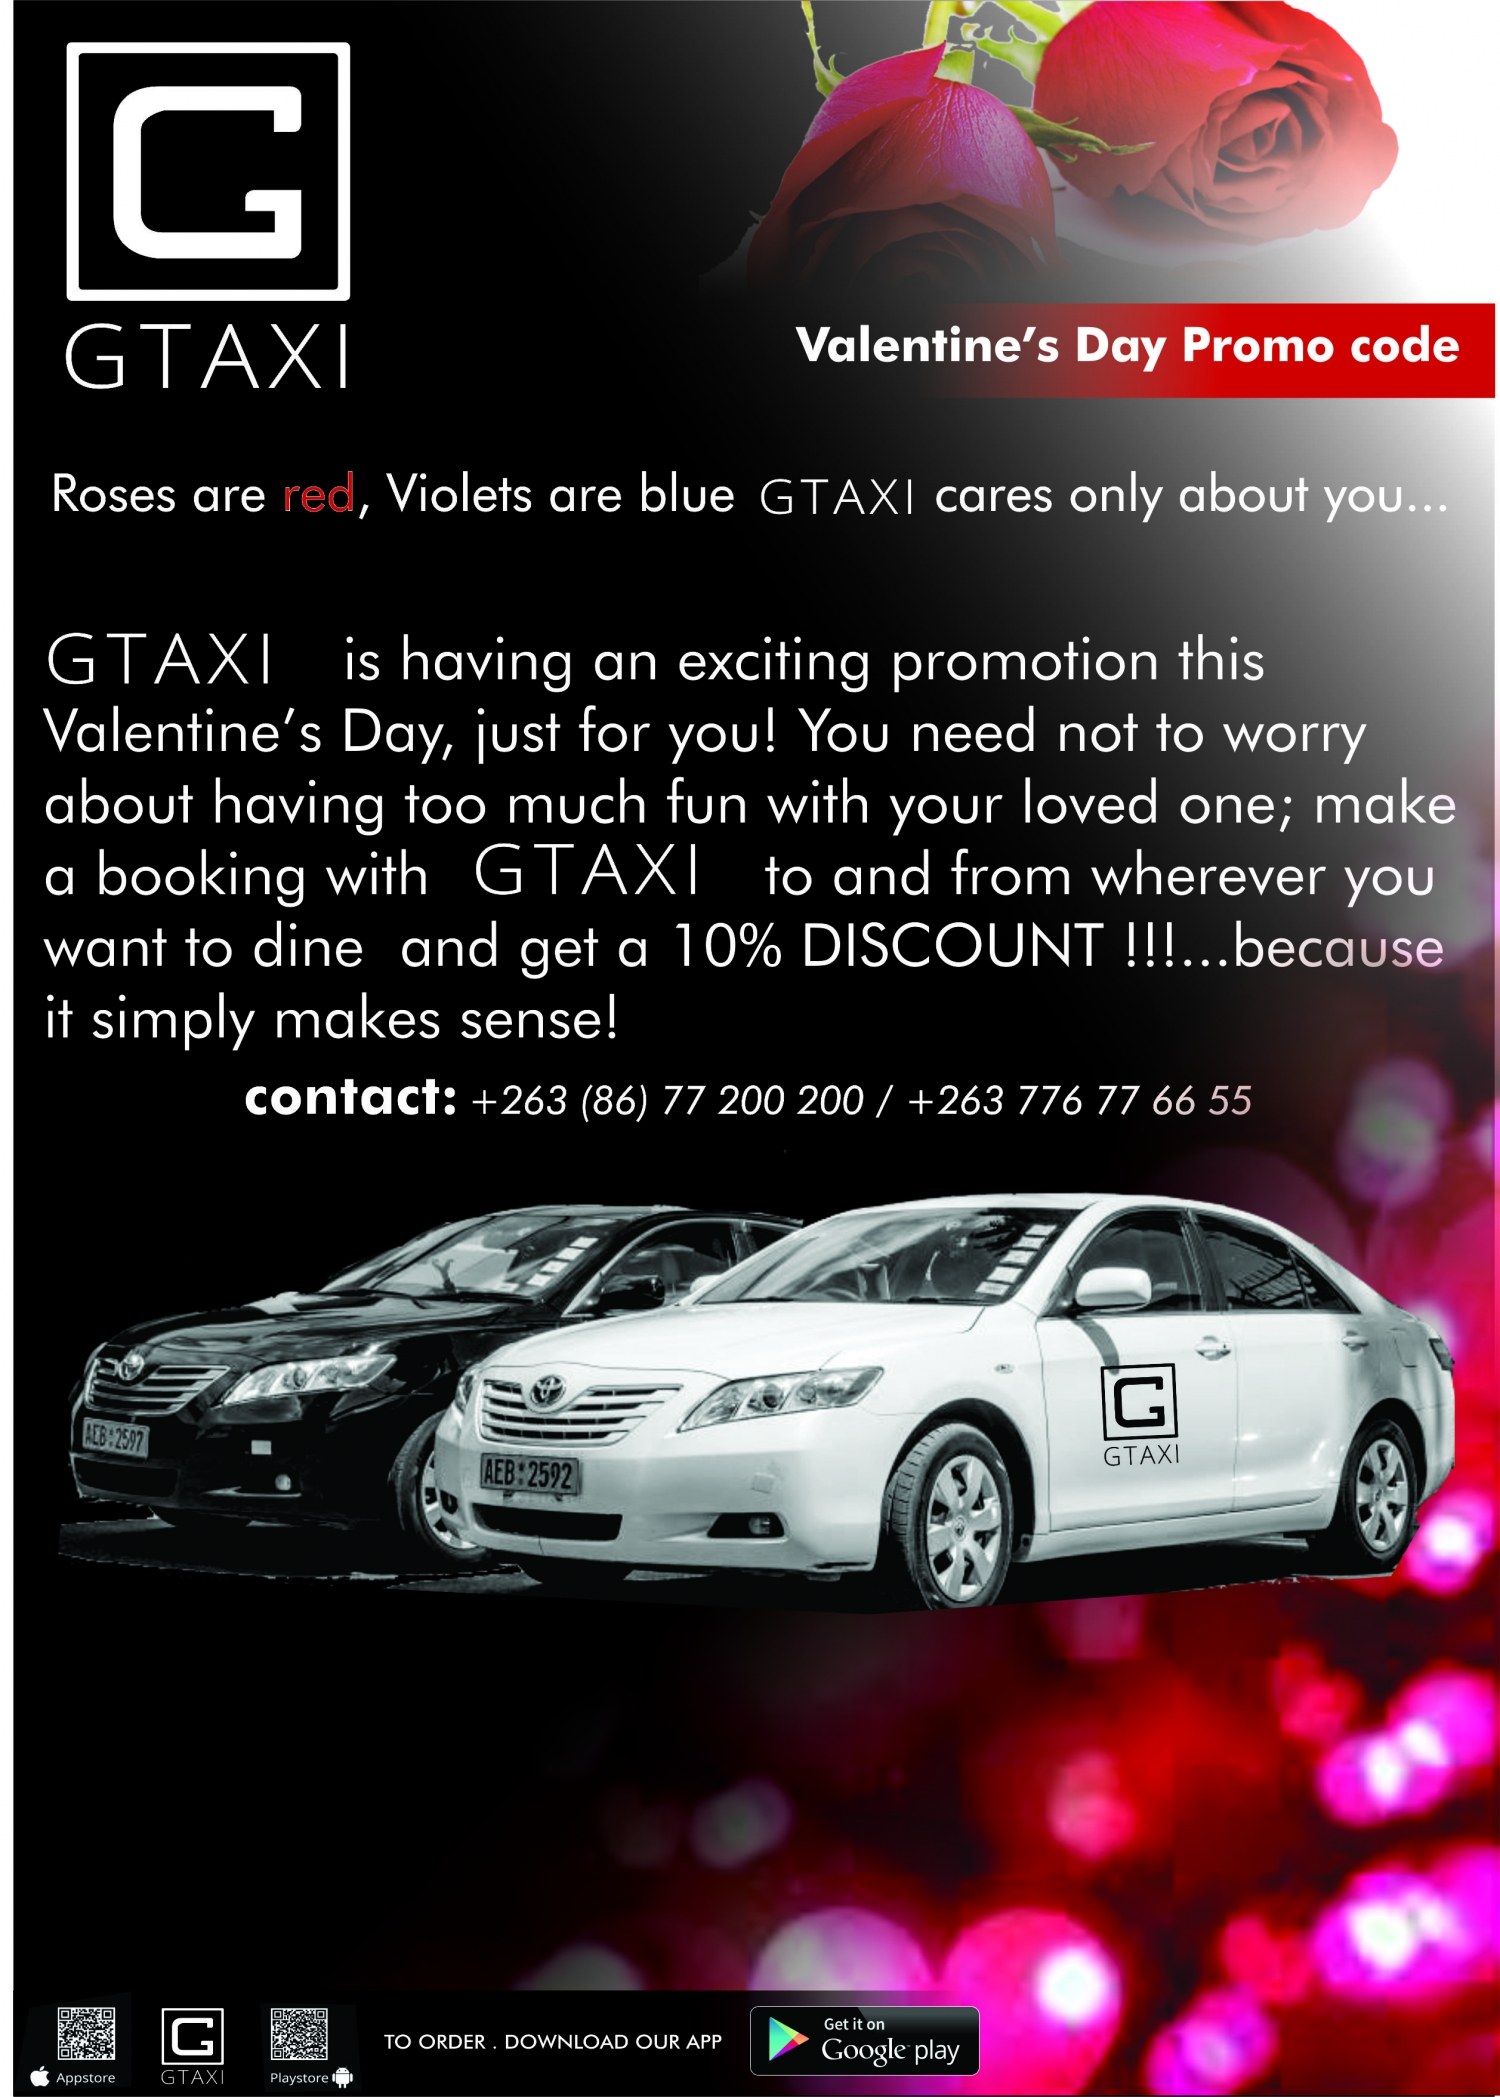 GTaxi Valentines Day Promo